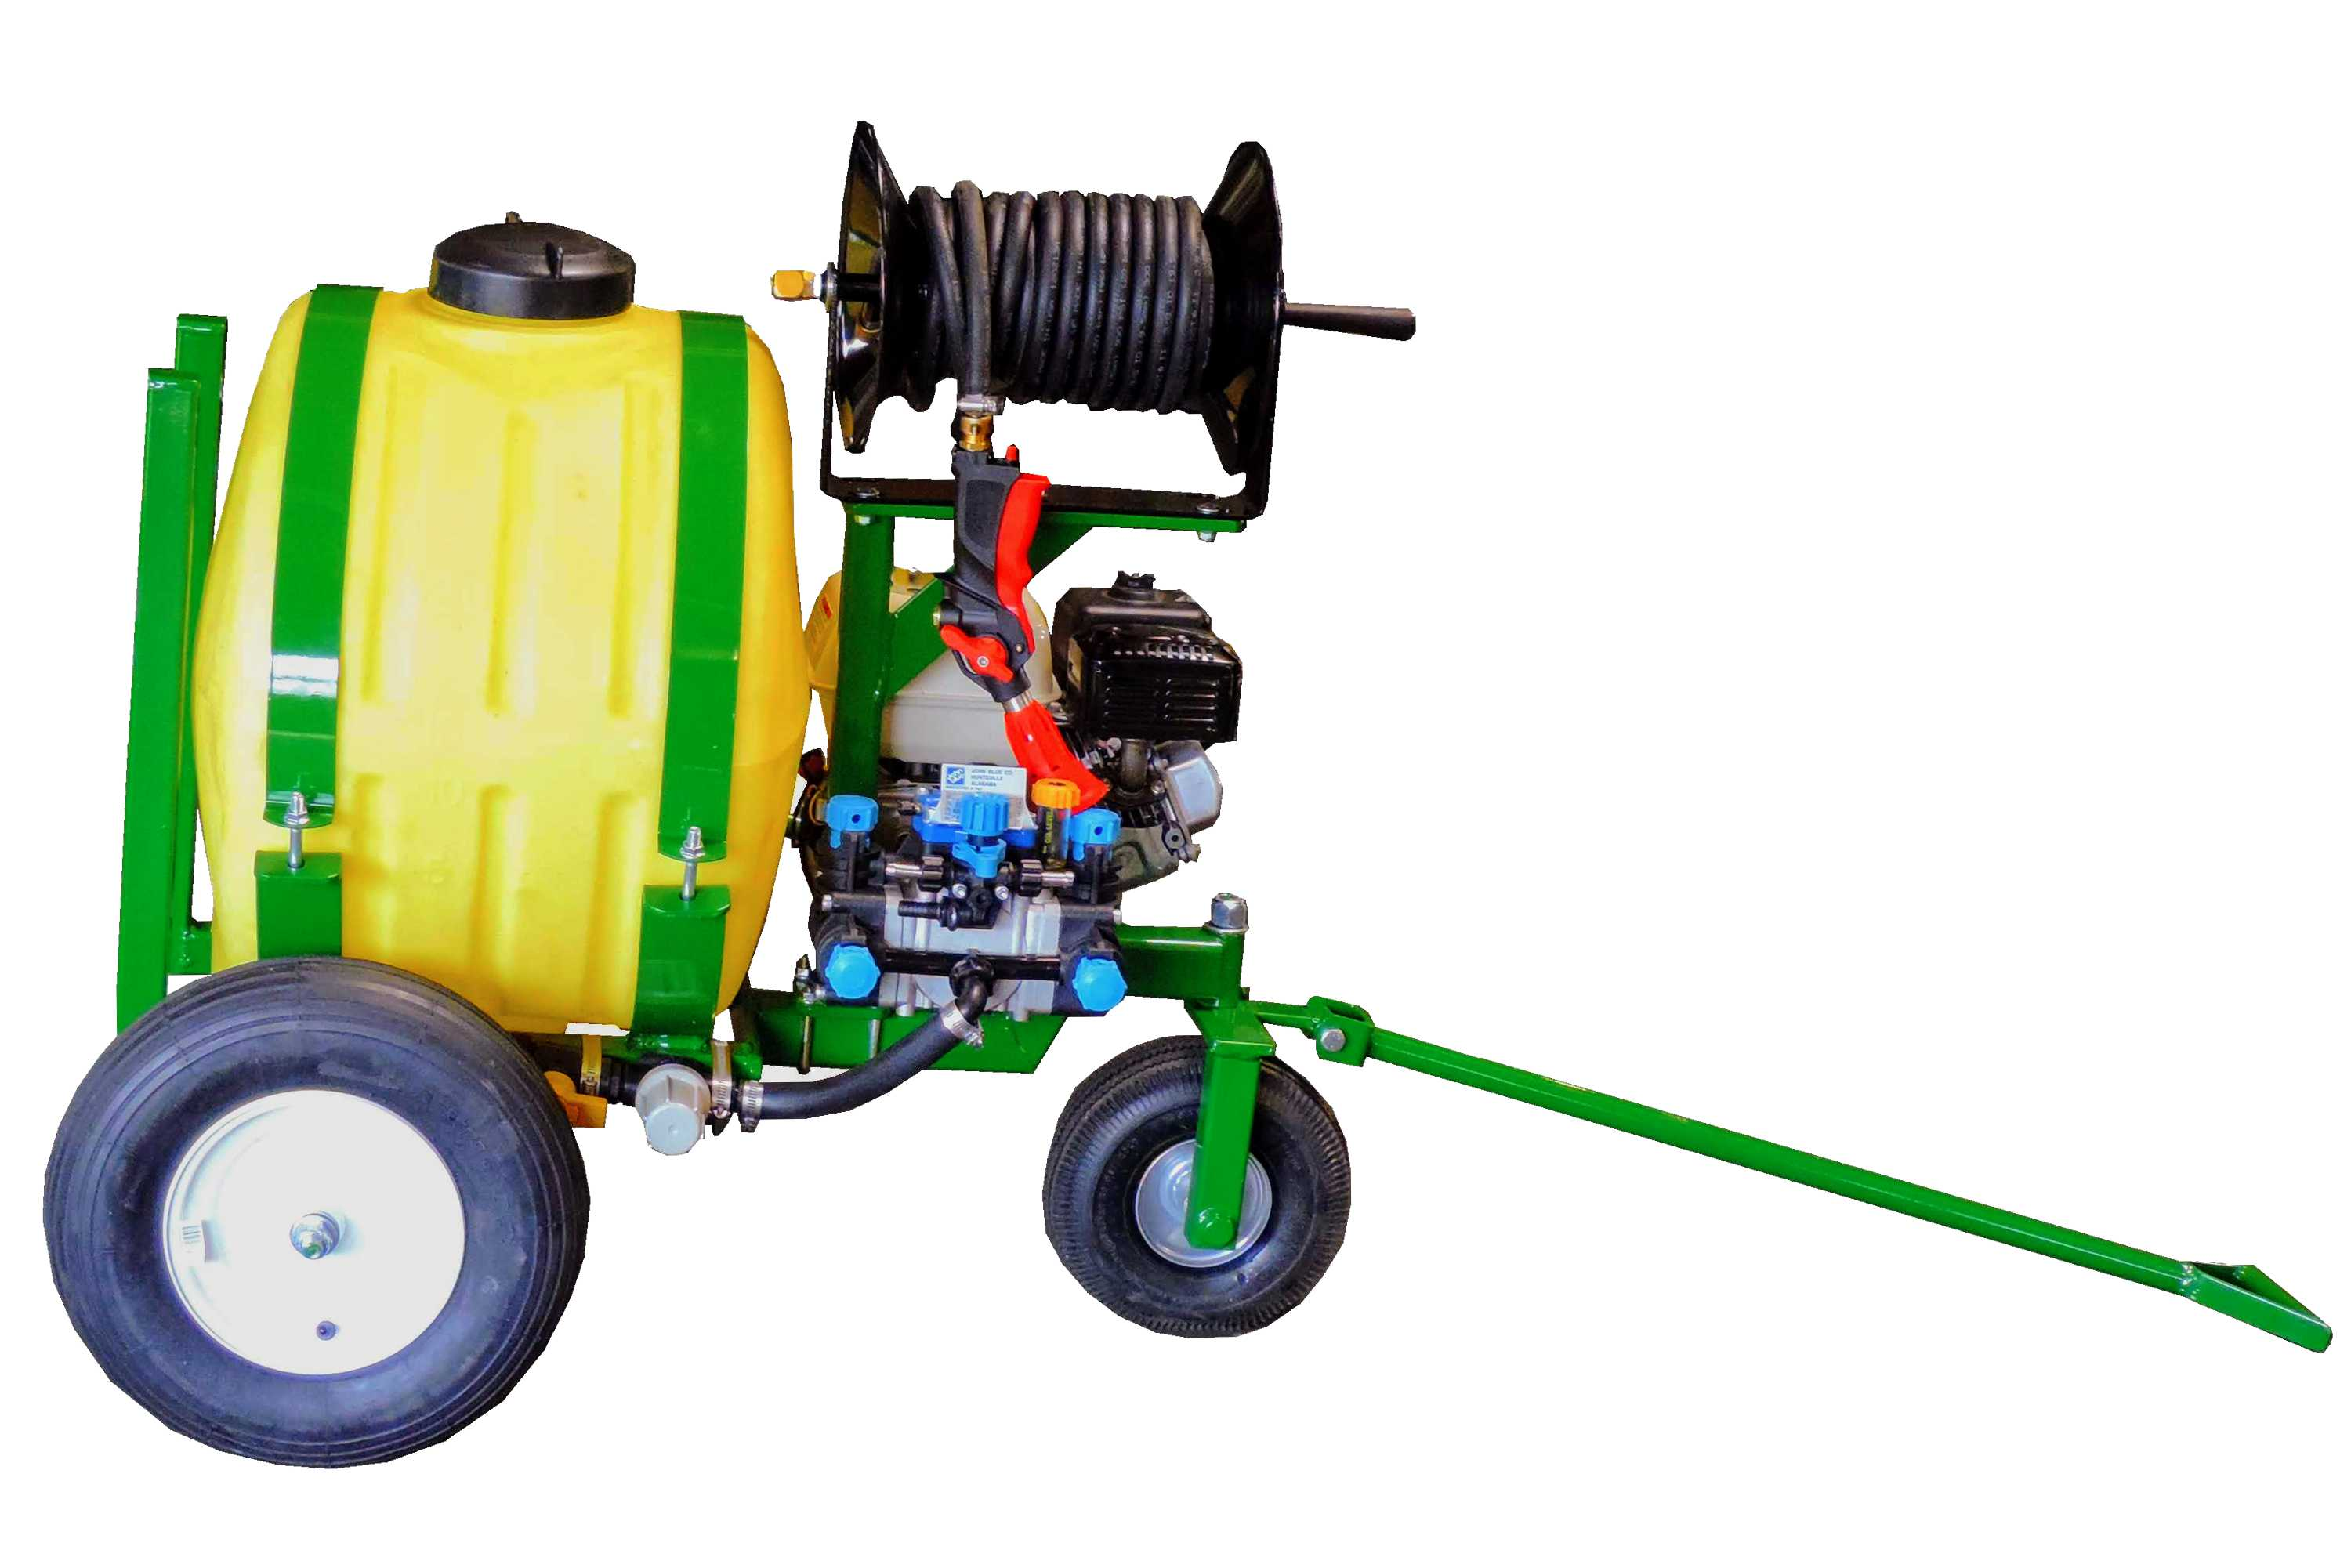 Orchard sprayer with 25 gallon tank and hose reel